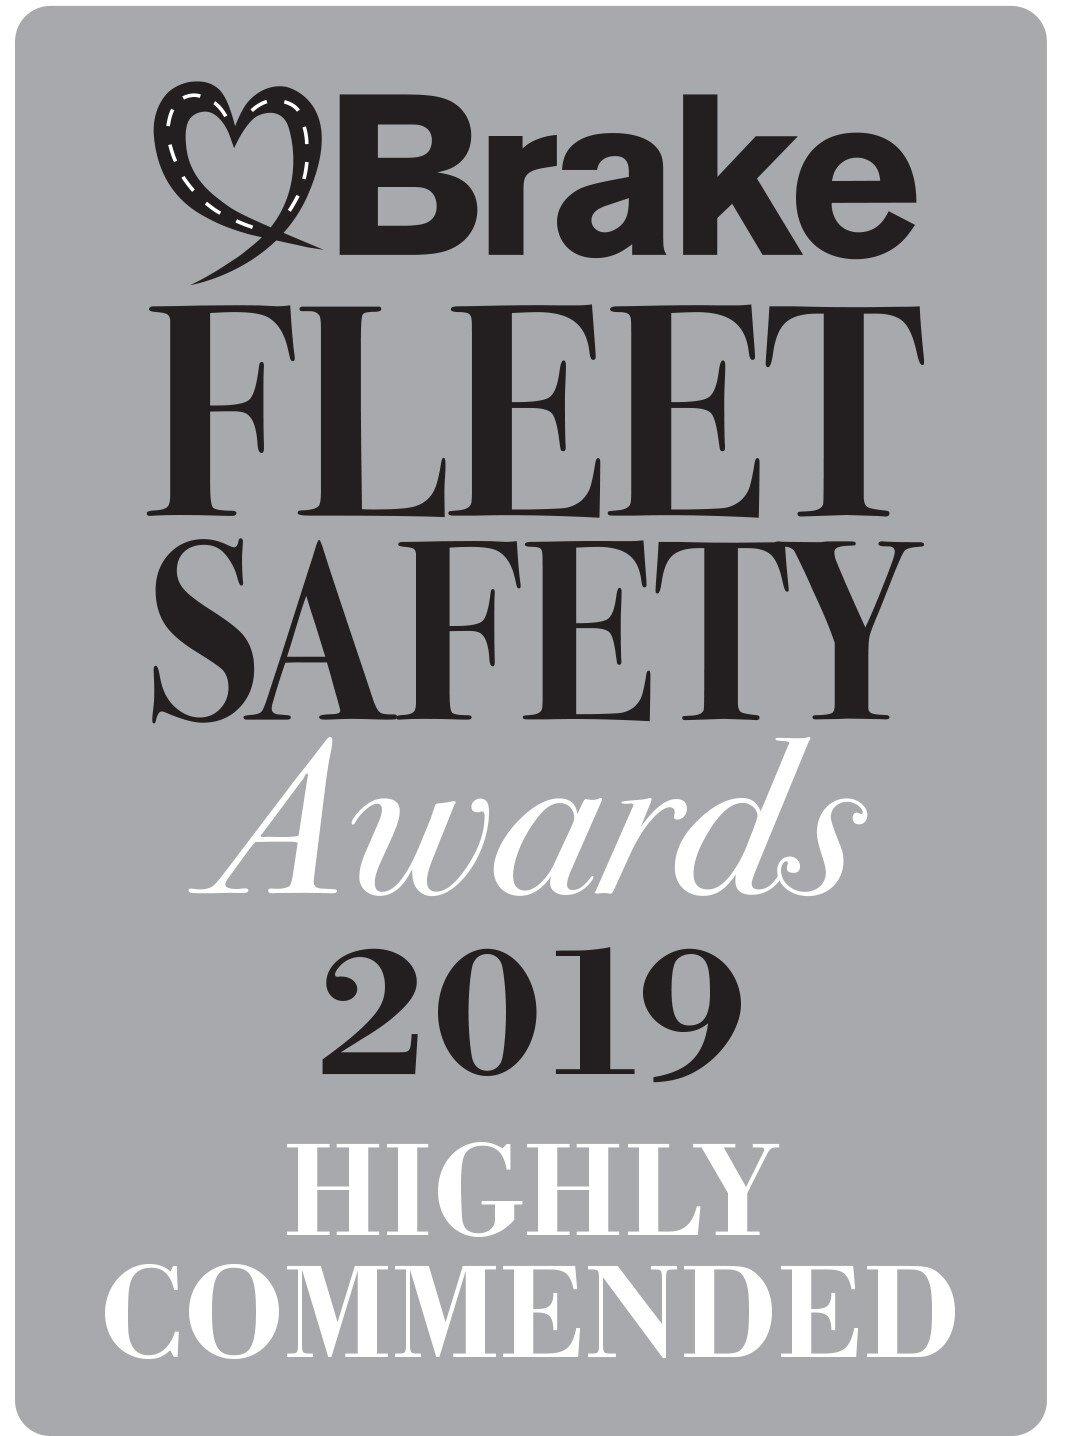 Argus Tracking Telematics win highly commended at Brake Fleet Safety Awards